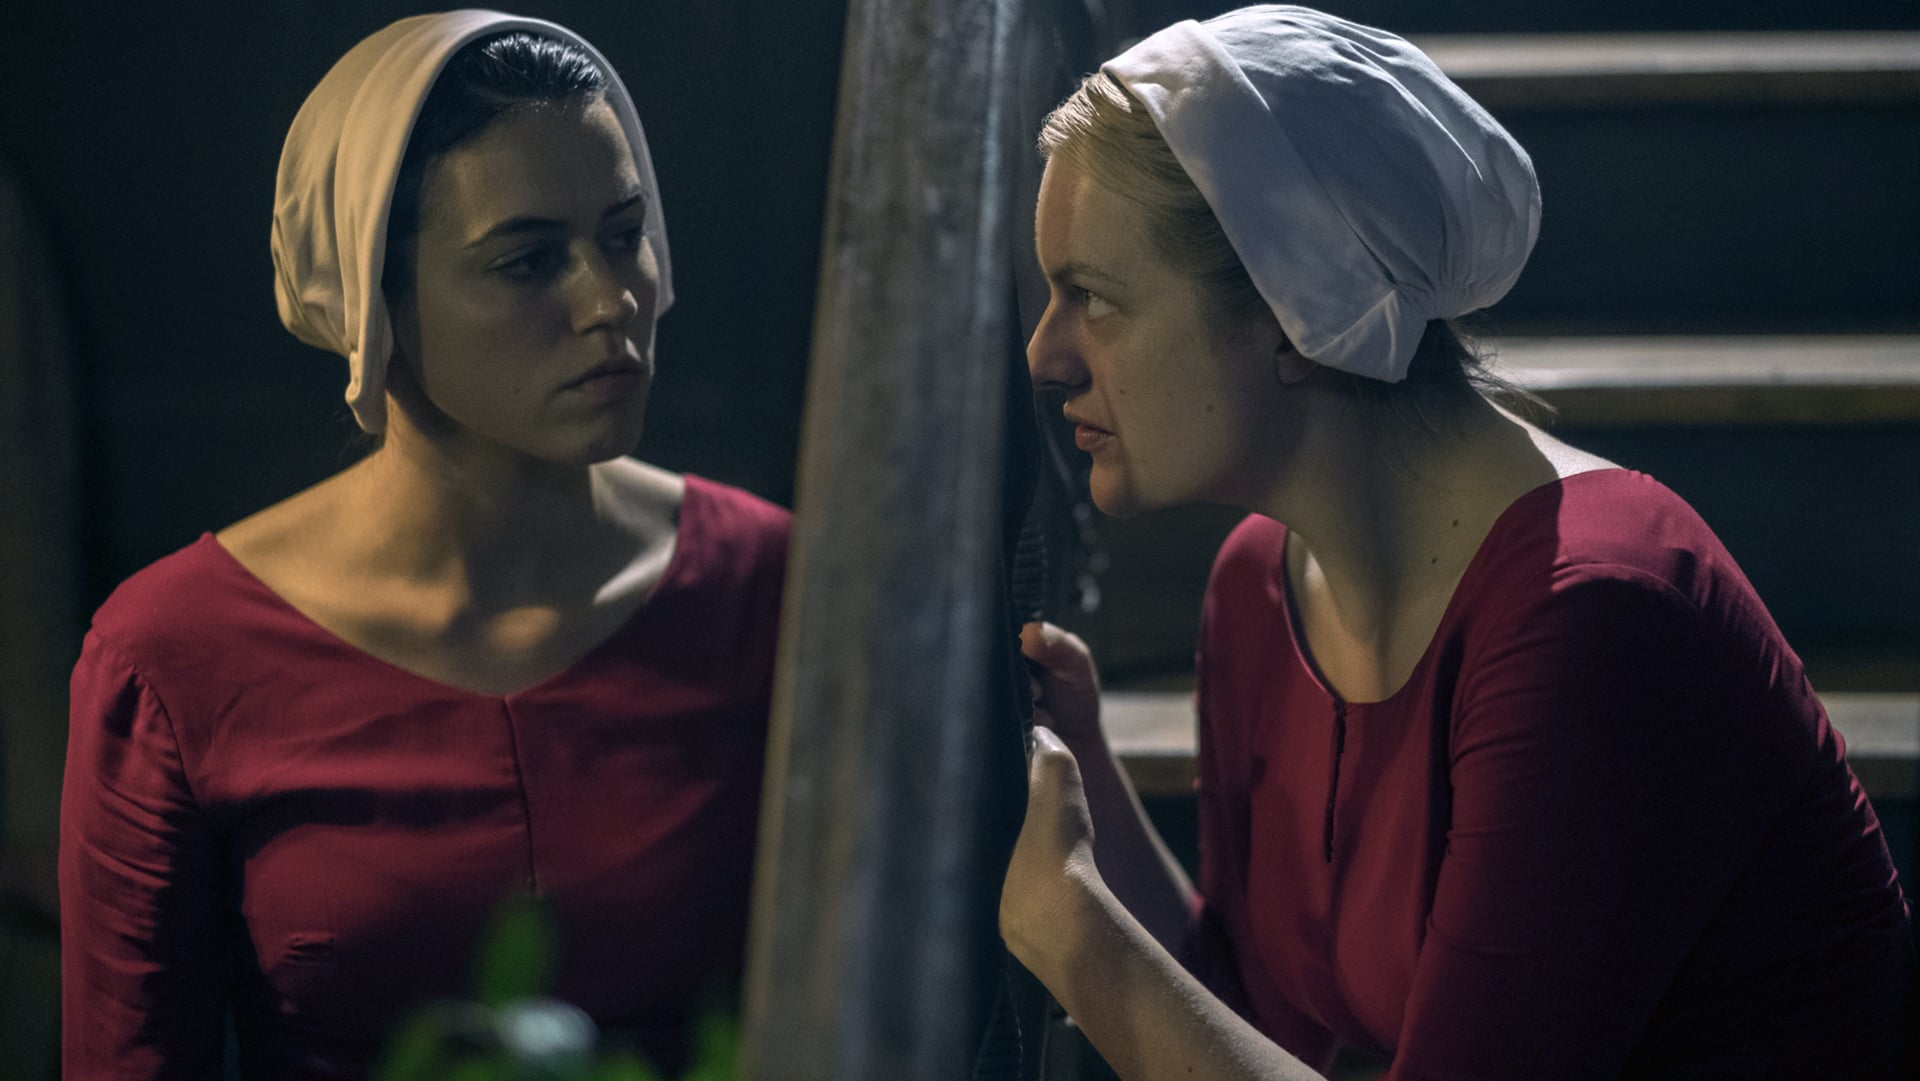 THE HANDMAID'S TALE, l-r: Nina Kiri, Elisabeth Moss in 'Other Women' (Season 2, Episode 4, aired May 9, 2018). ph: George Kraychyk/ Hulu/courtesy Everett Collection